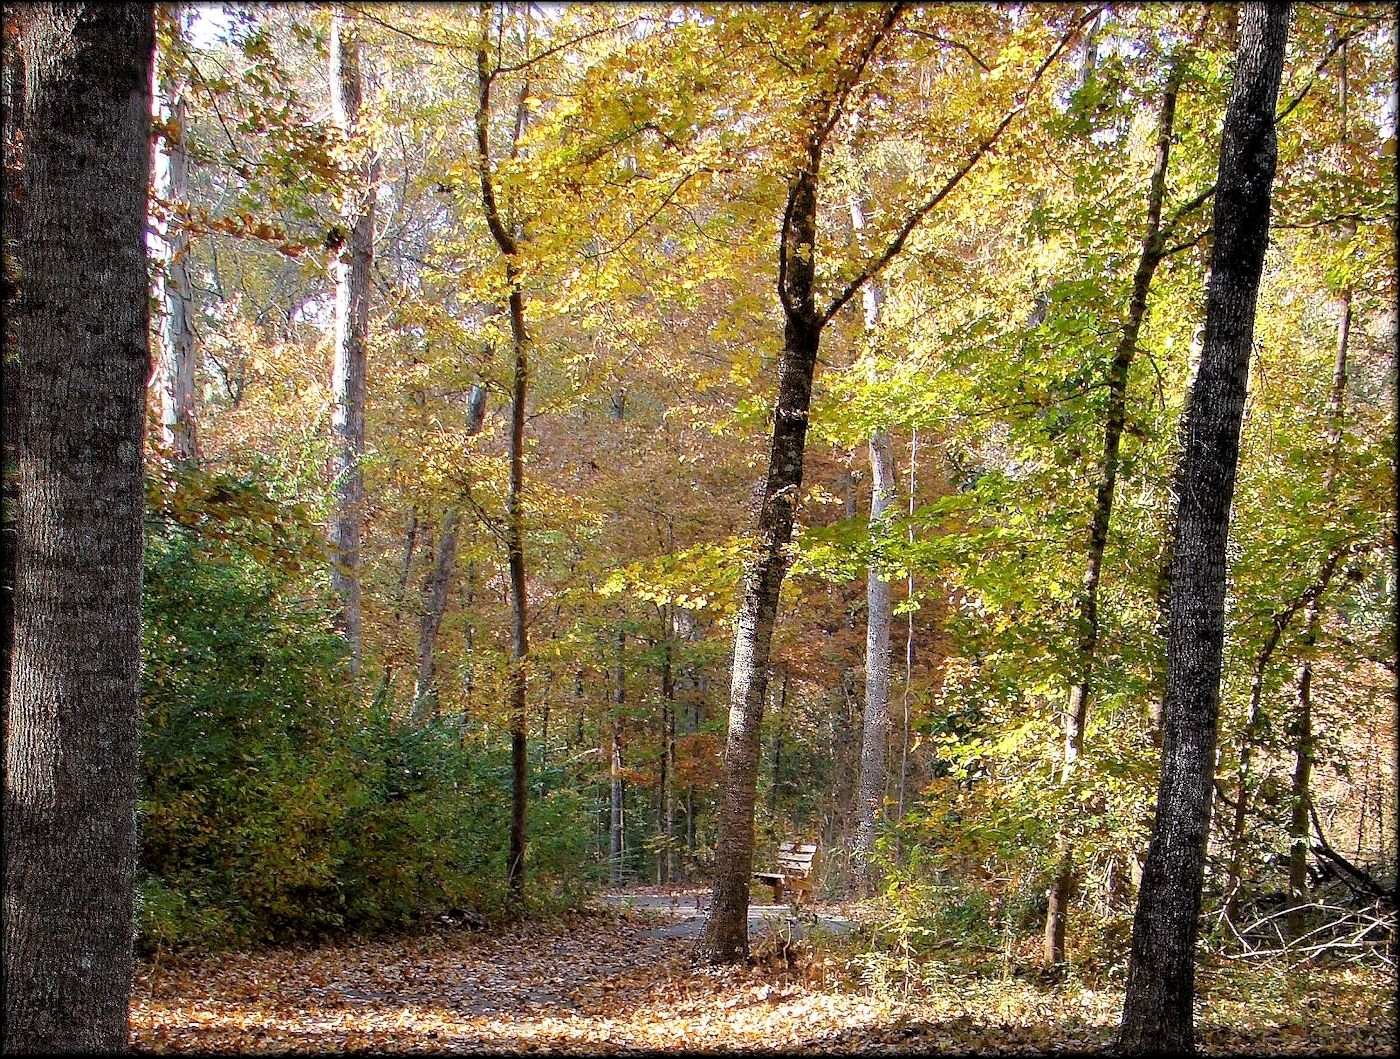 North Tucker Woods Trail in Historic Nacogdoches